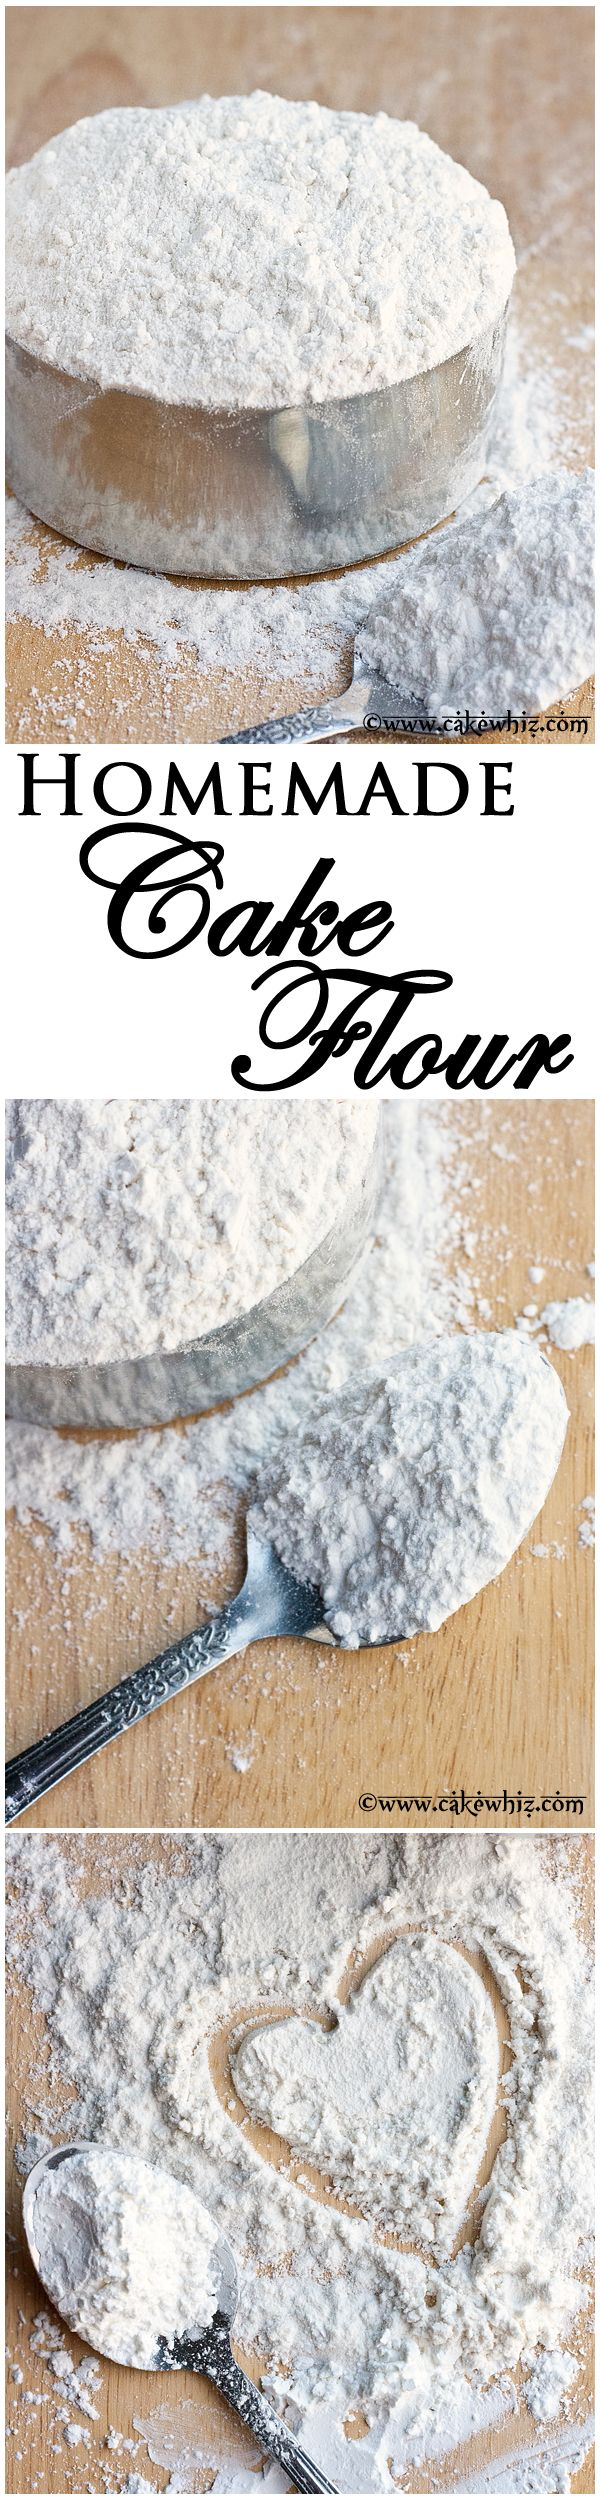 Cake flour is expensive. Learn to make Cake Flour at home with just 2 ingredients!